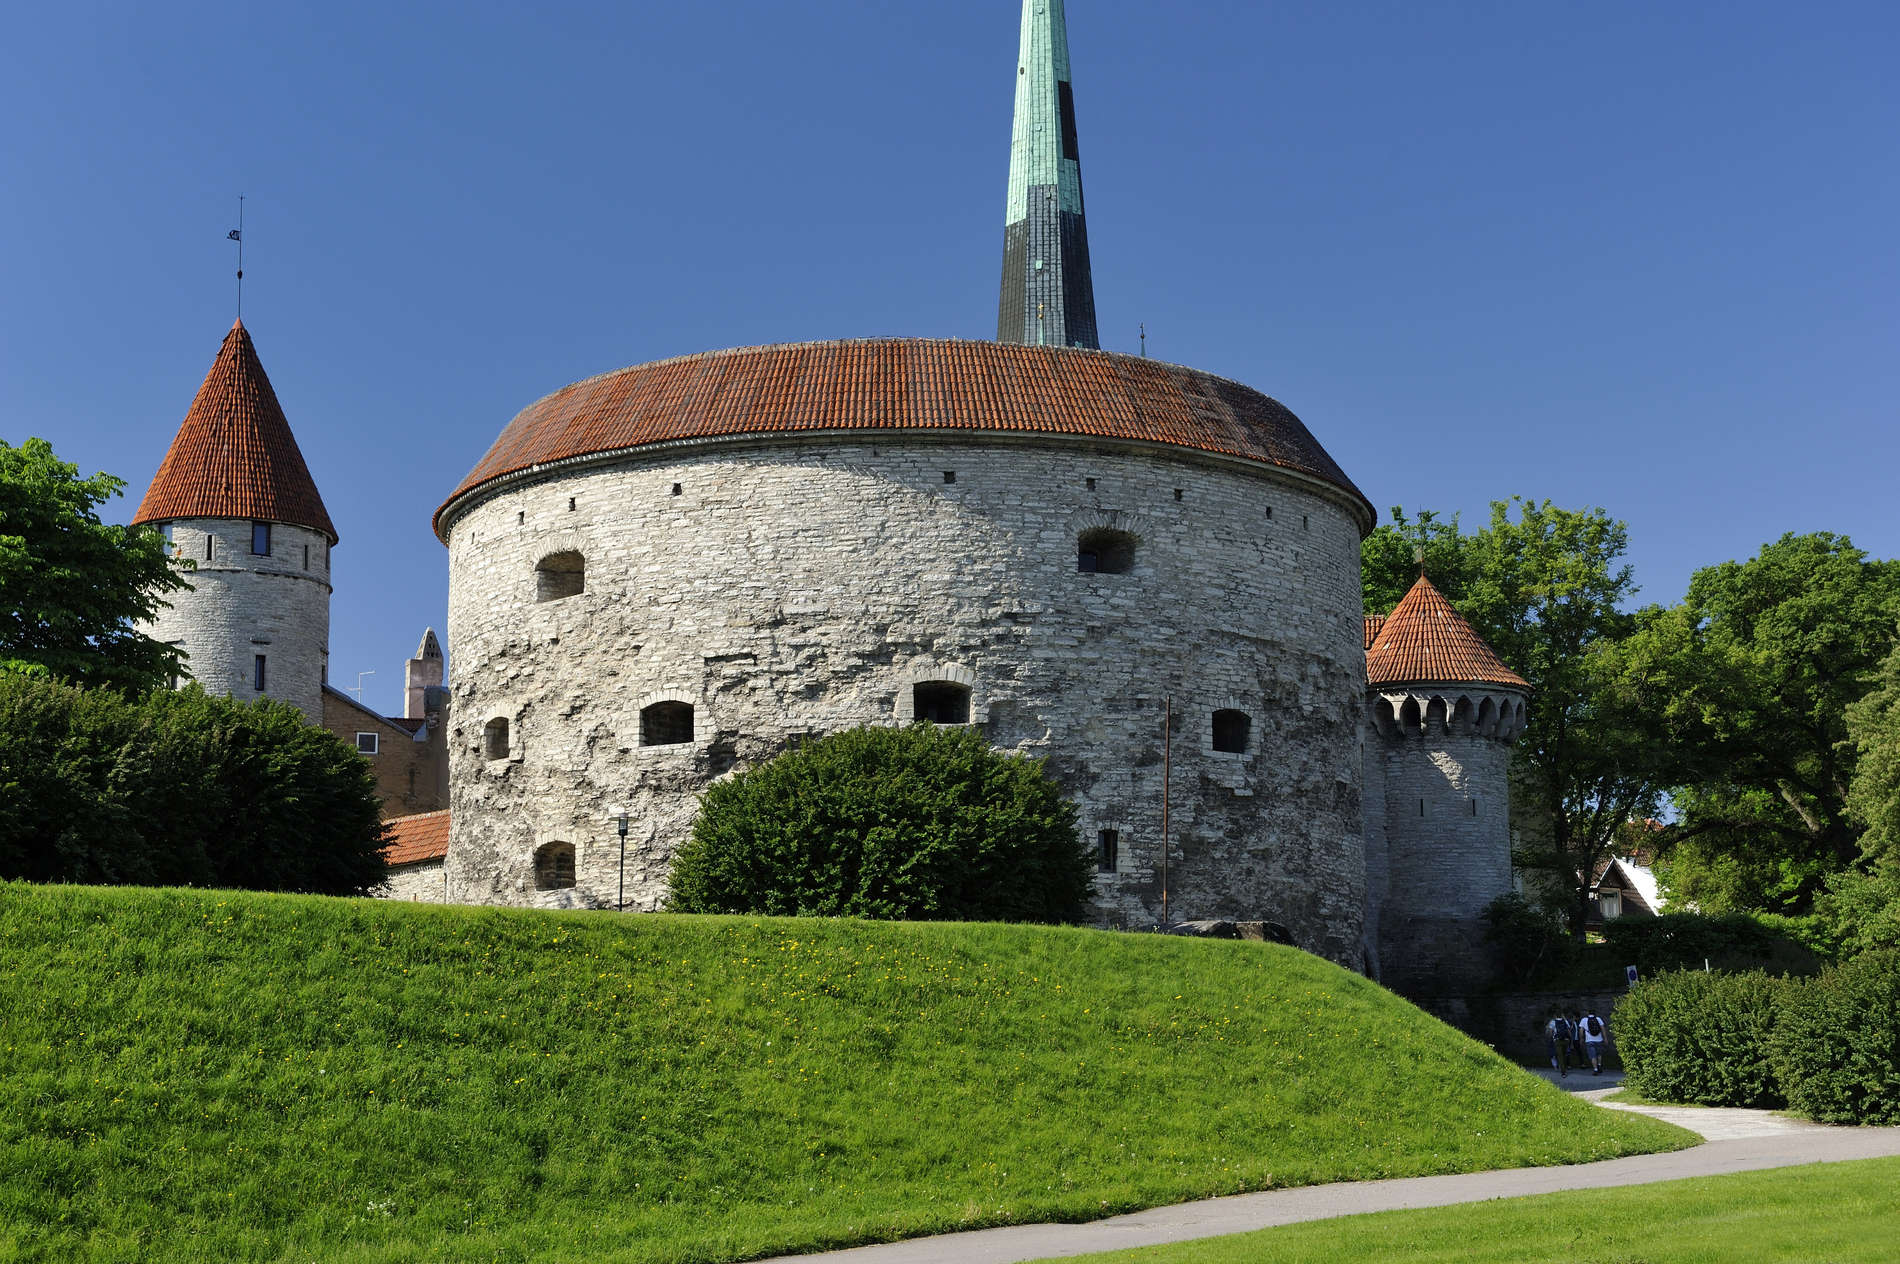 External view of the Great Coastal Gate and Fat Margaret Tower in the Old Town of Tallinn, Estonia. Photo by: Toomas Volmer